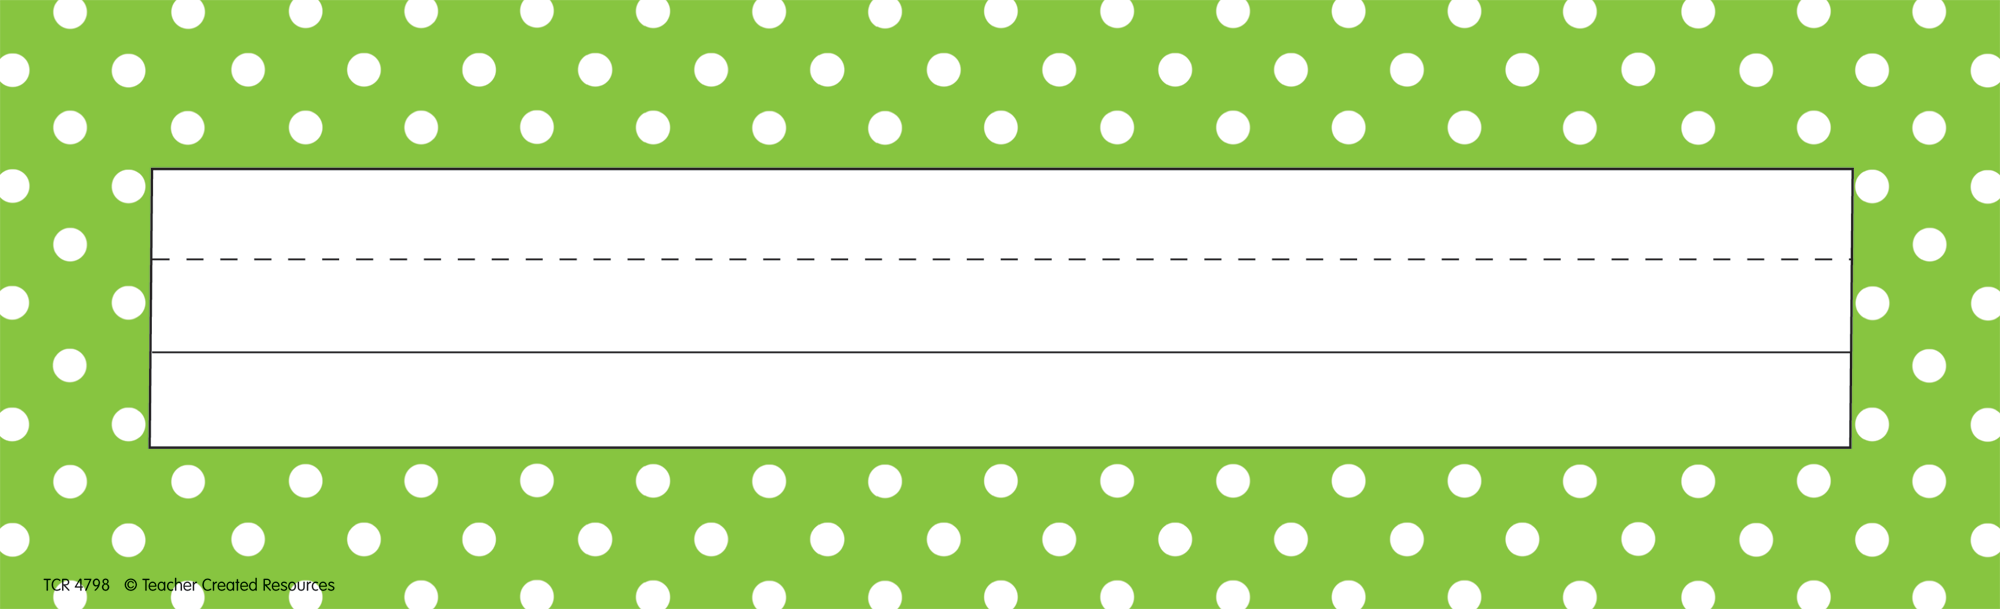 Lime Polka Dots Flat Name Plates